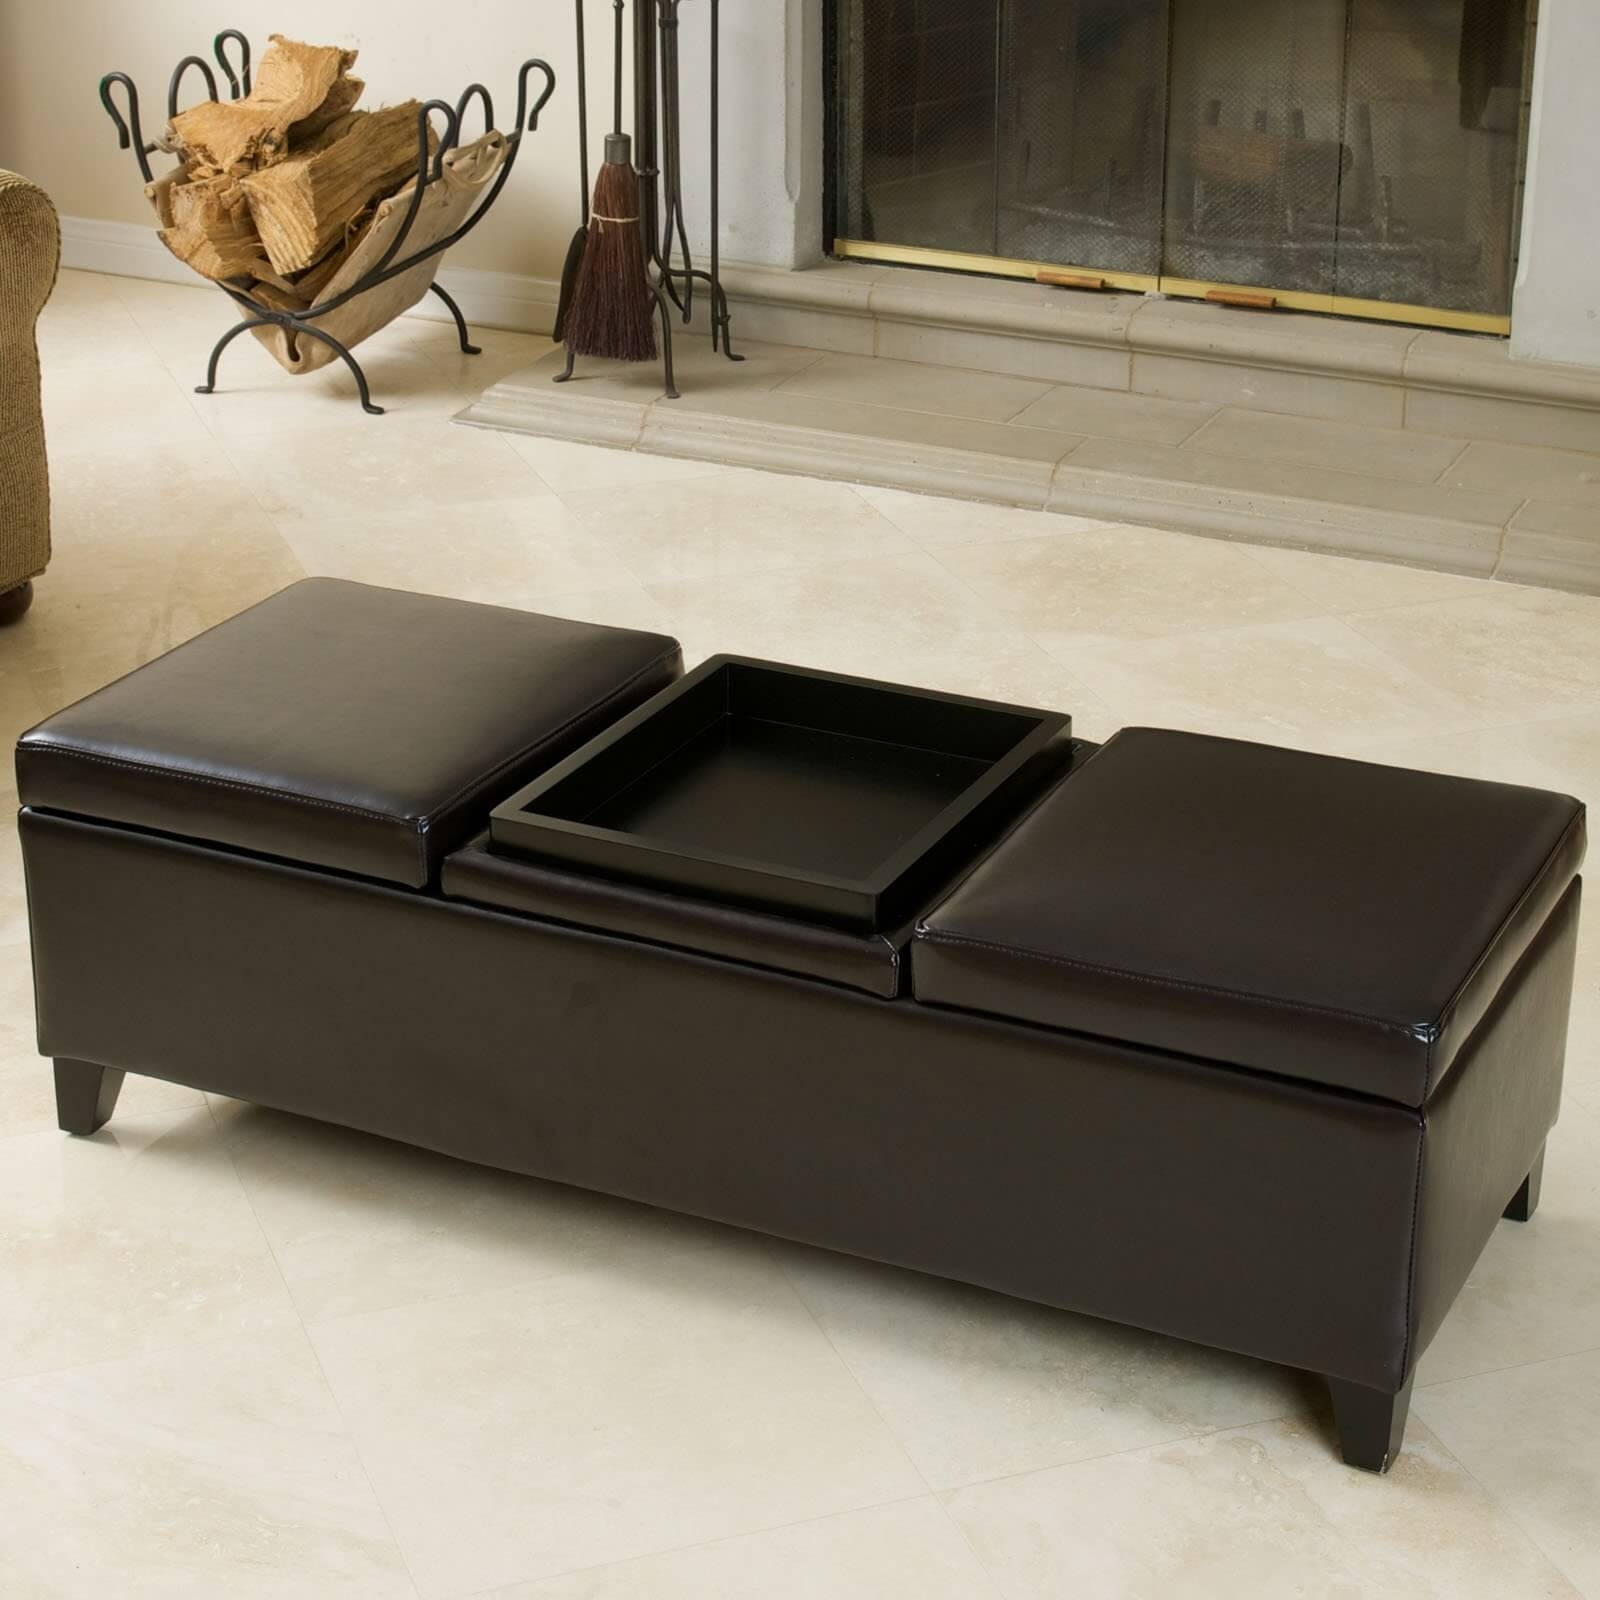 36 Top Brown Leather Ottoman Coffee Tables in Brown Leather Ottoman Coffee Tables (Image 1 of 30)